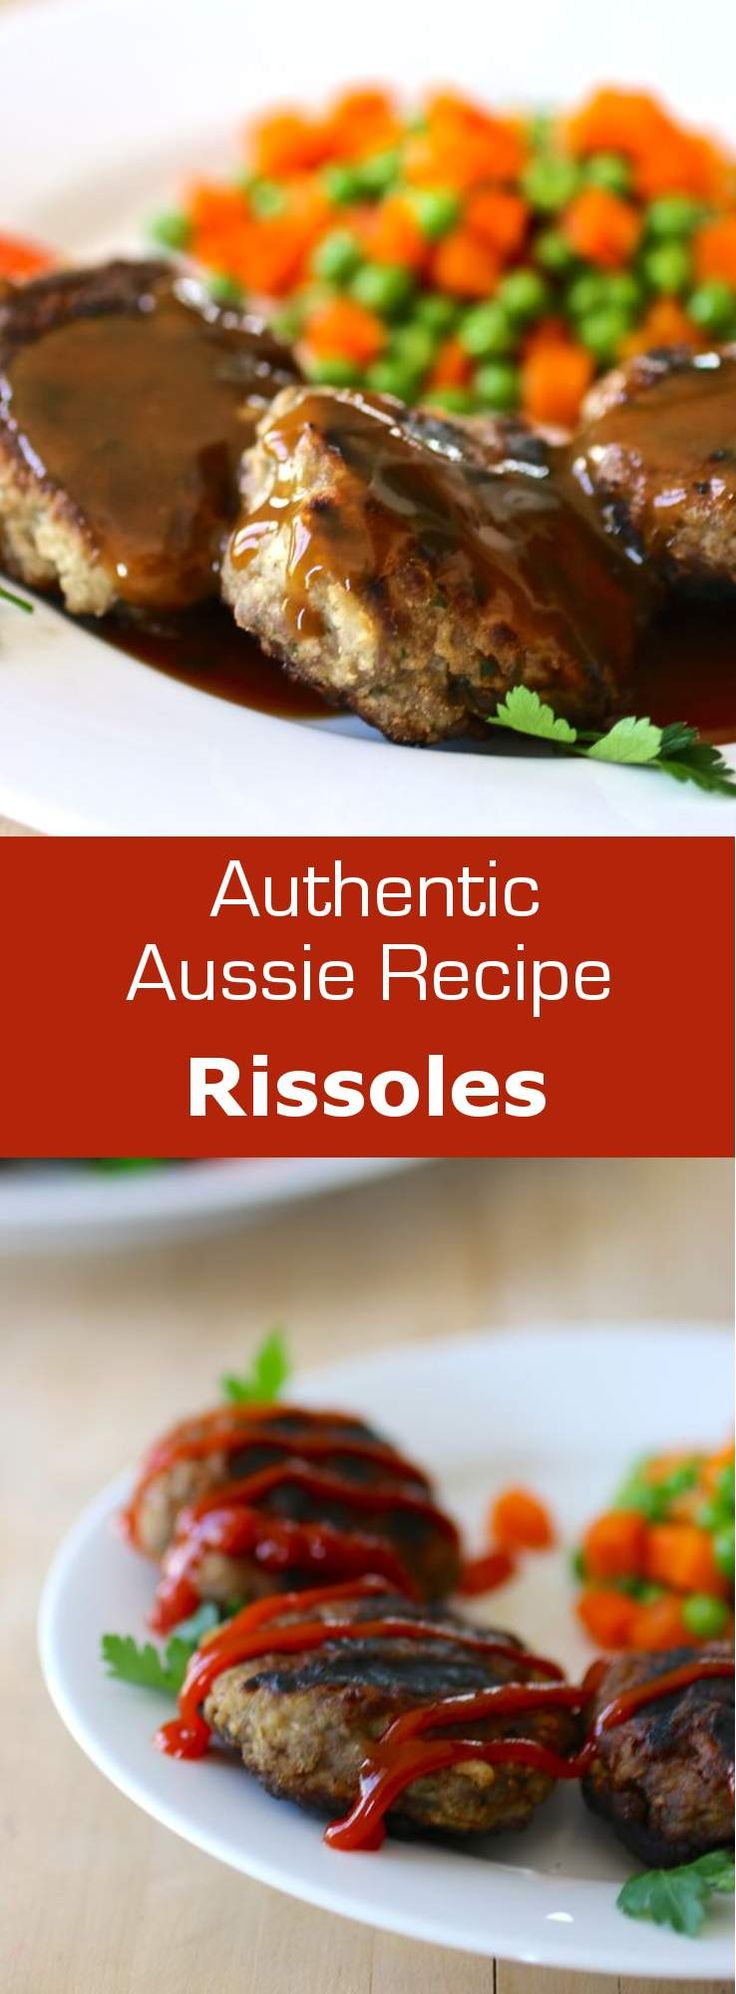 Australian rissoles are meat patties that are grilled on the BBQ. Depending on the recipe, these patties can include grated vegetables. #beef #australia